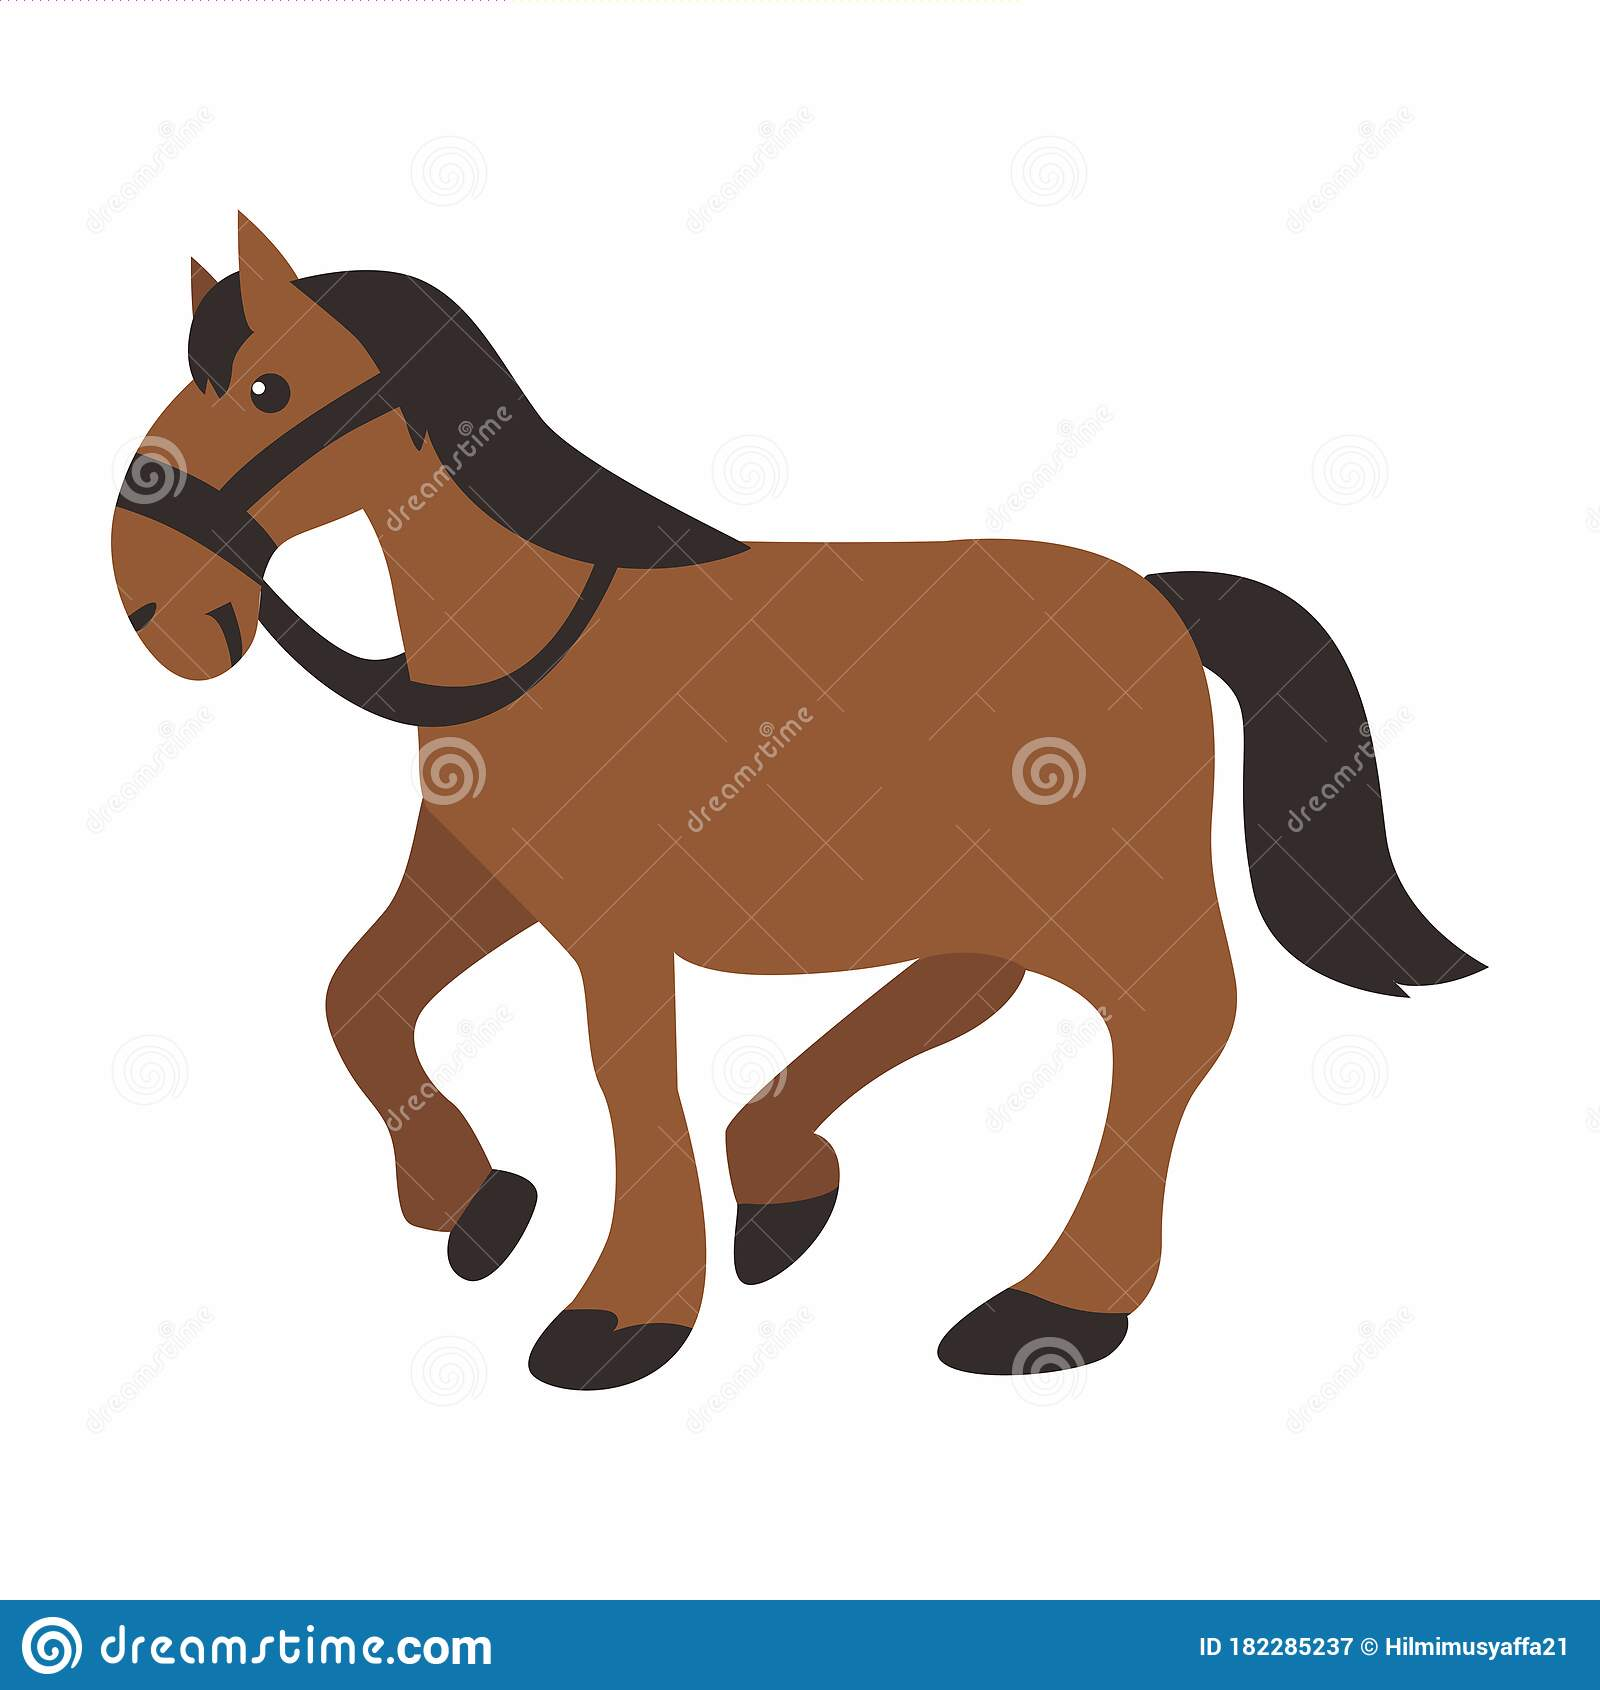 Illustration Graphic Vector Of Horse Cartoon Of Horse Cute Horse On White Background Stock Illustration Illustration Of Character Mammal 182285237